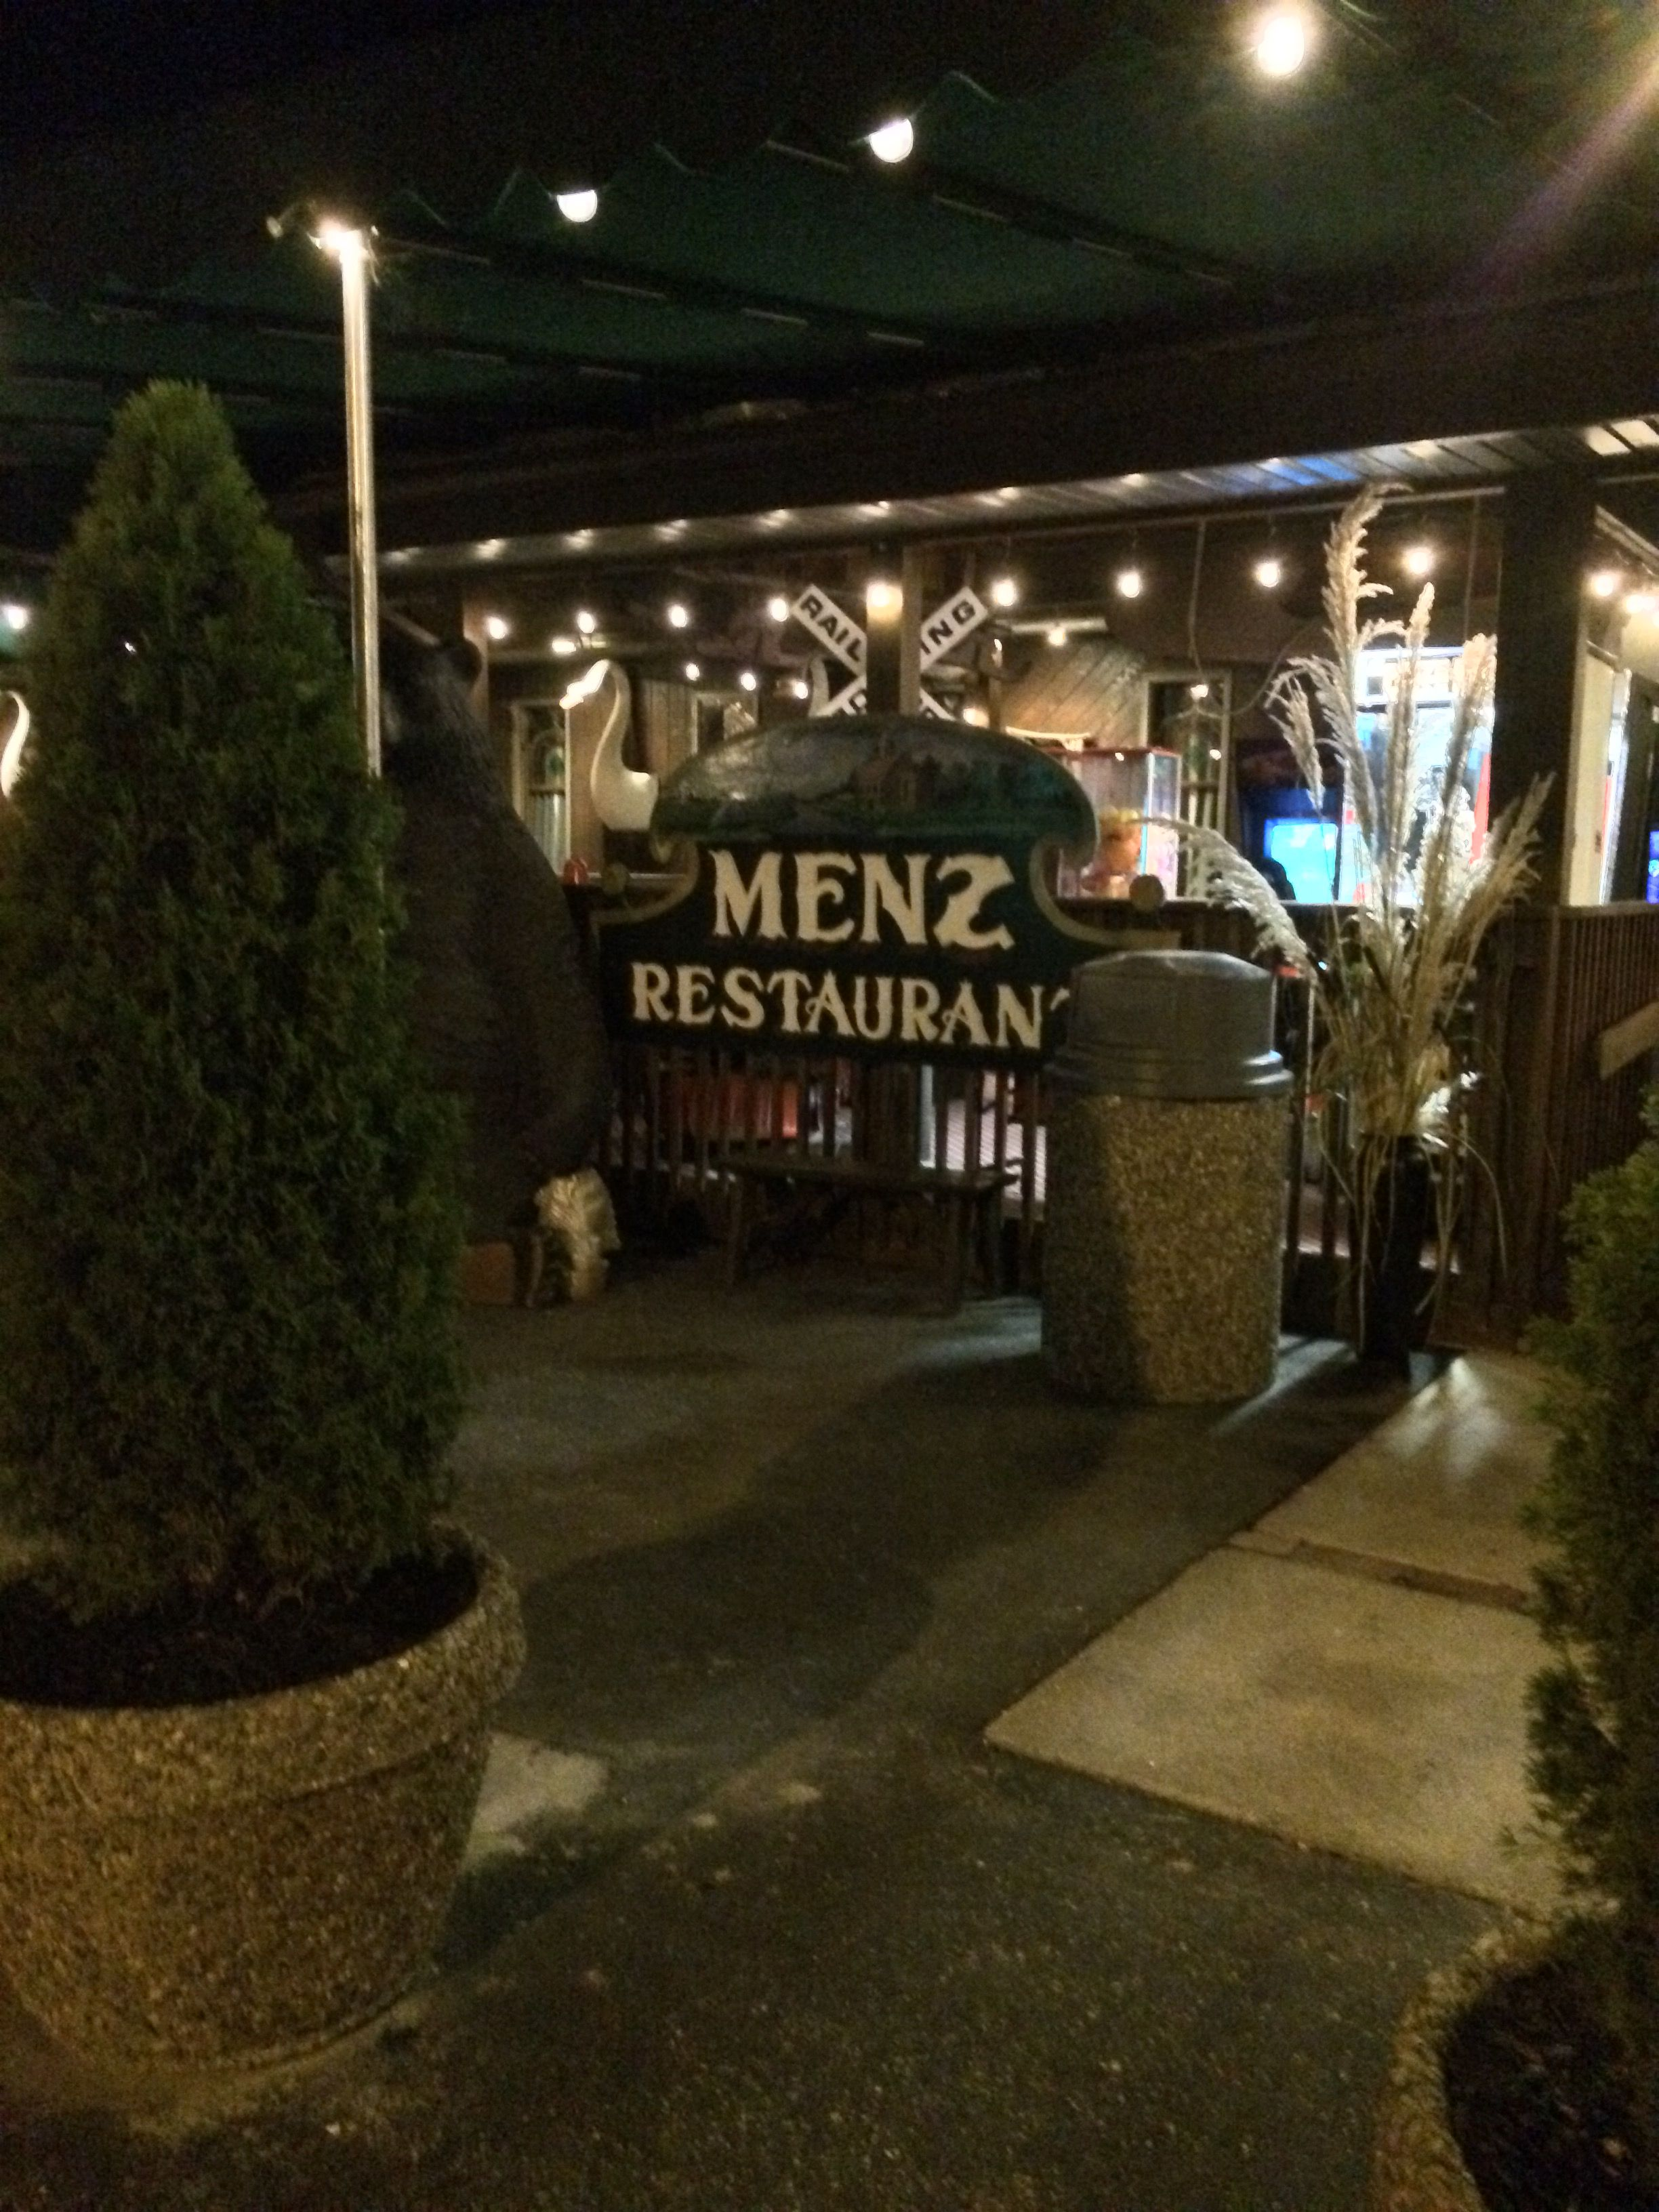 Menz Restaurant 985 Rt 47 South Rio Grande Nj Eating Out In